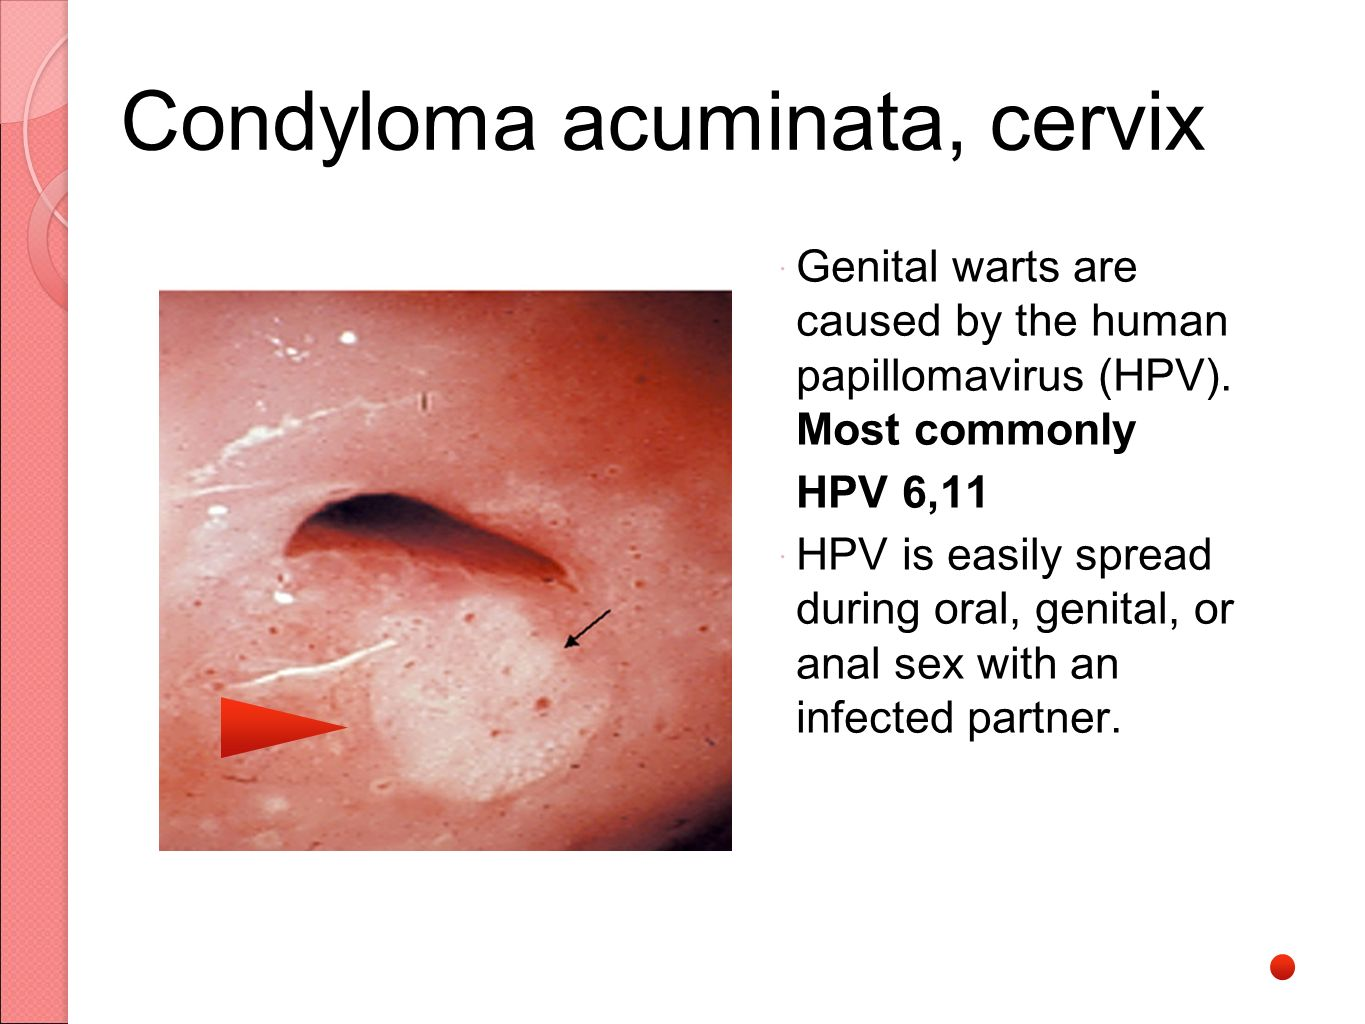 Condyloma acuminata during pregnancy. Uploaded by